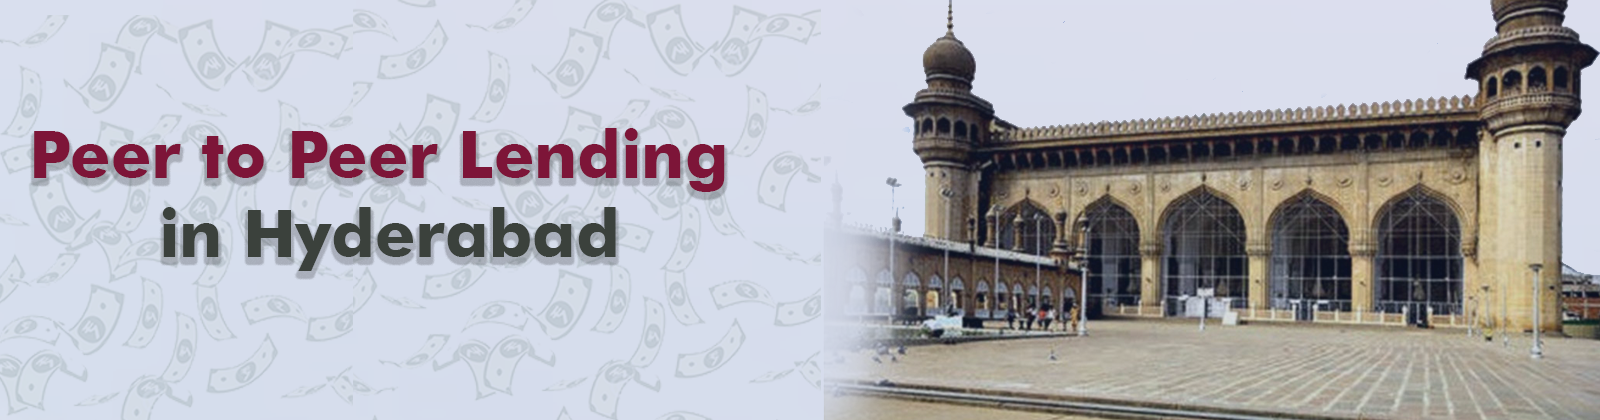 Peer to Peer Lending in Hyderabad